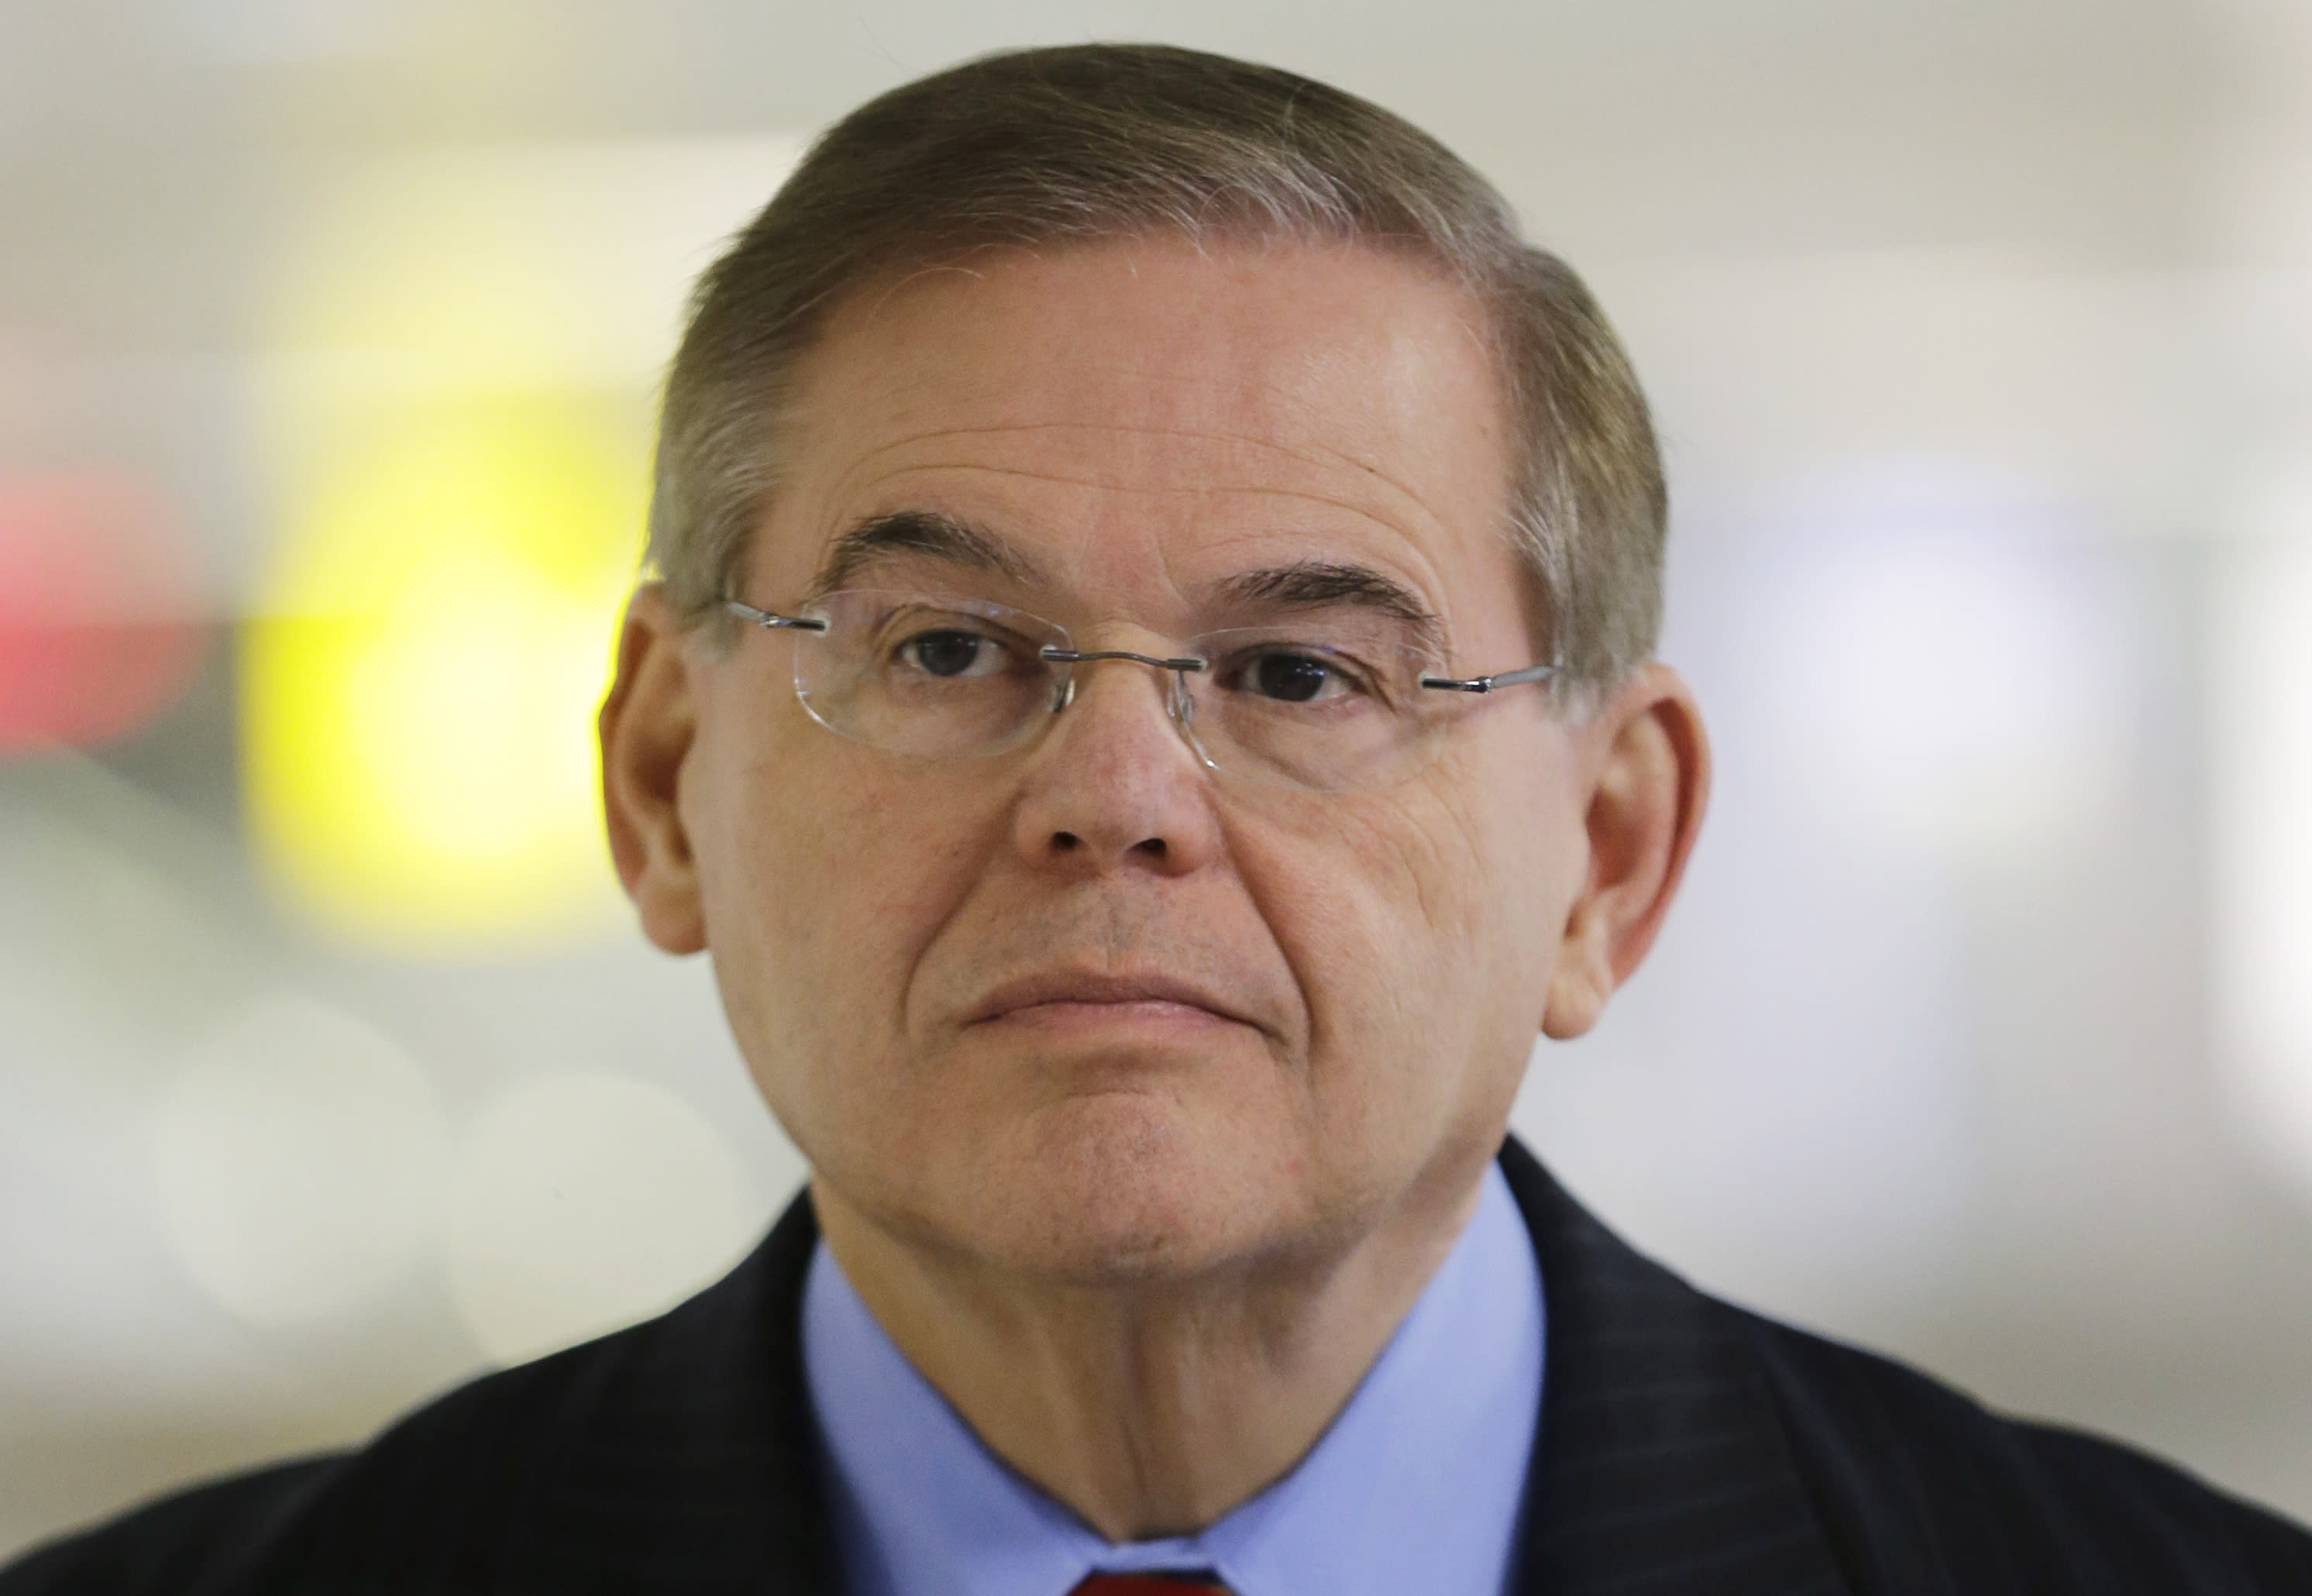 US Sen. Menendez: I've behaved appropriately in office